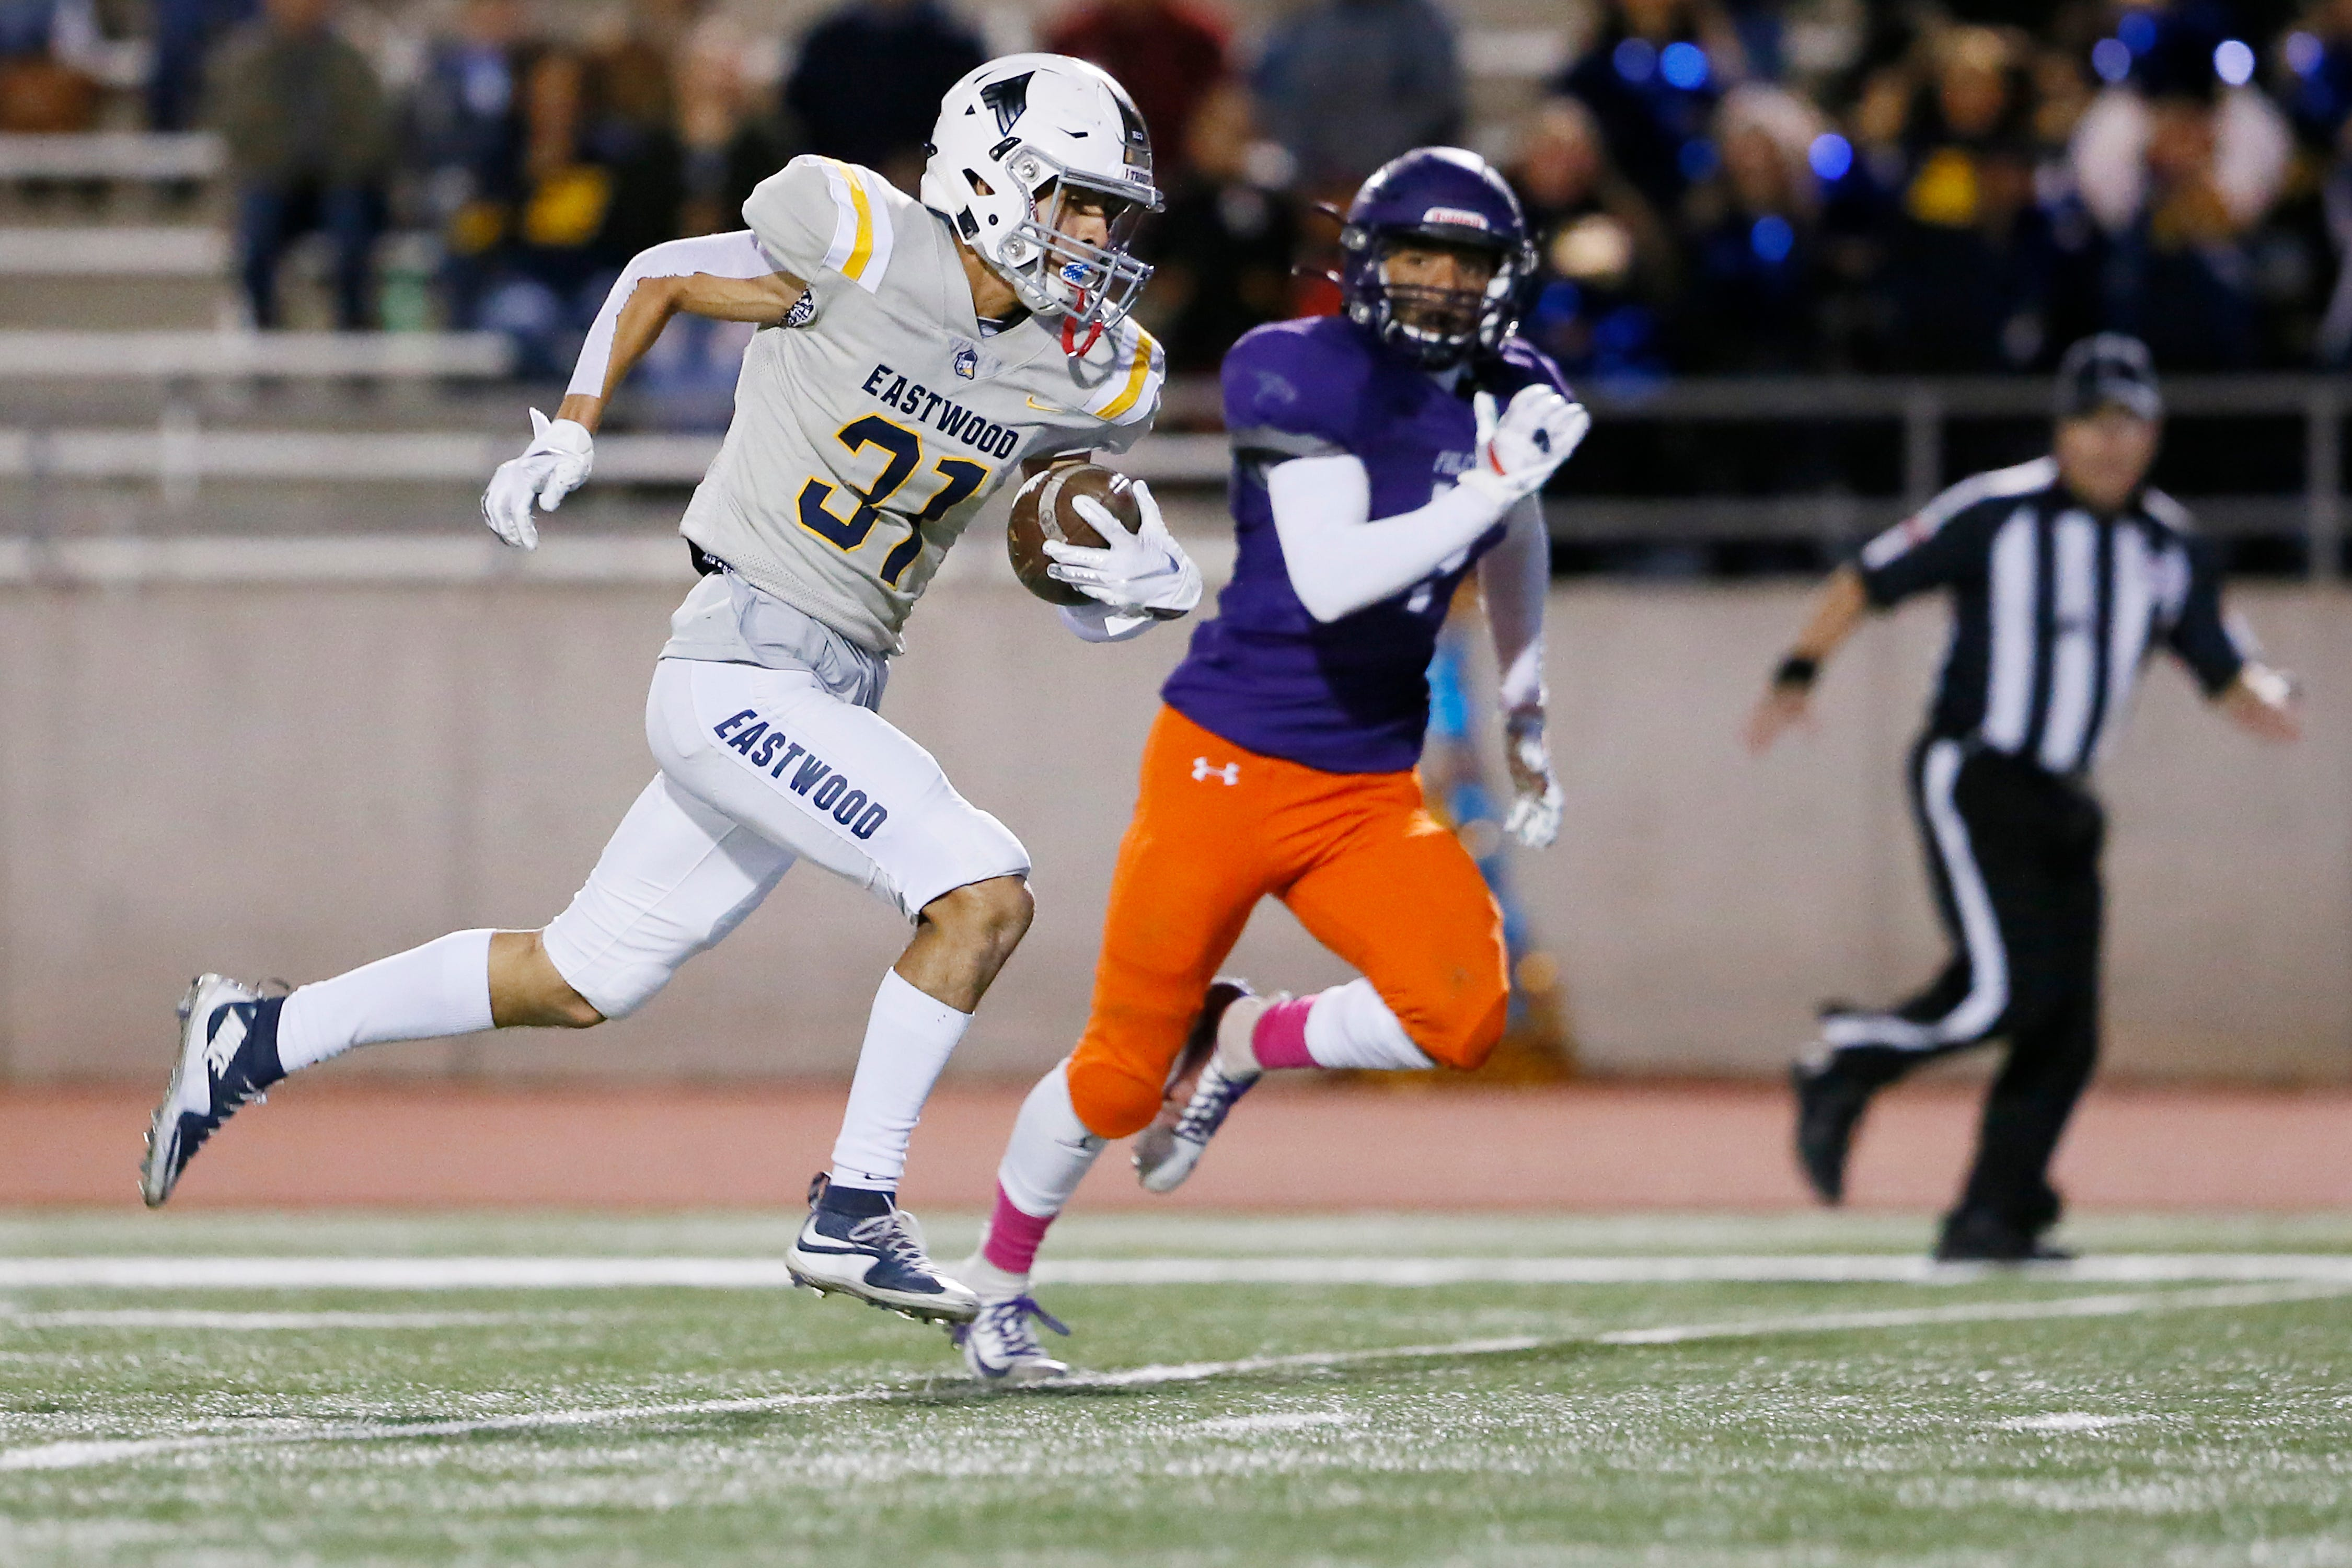 El Paso High School Football The Scoop And Predictions On Week 11 Matchups